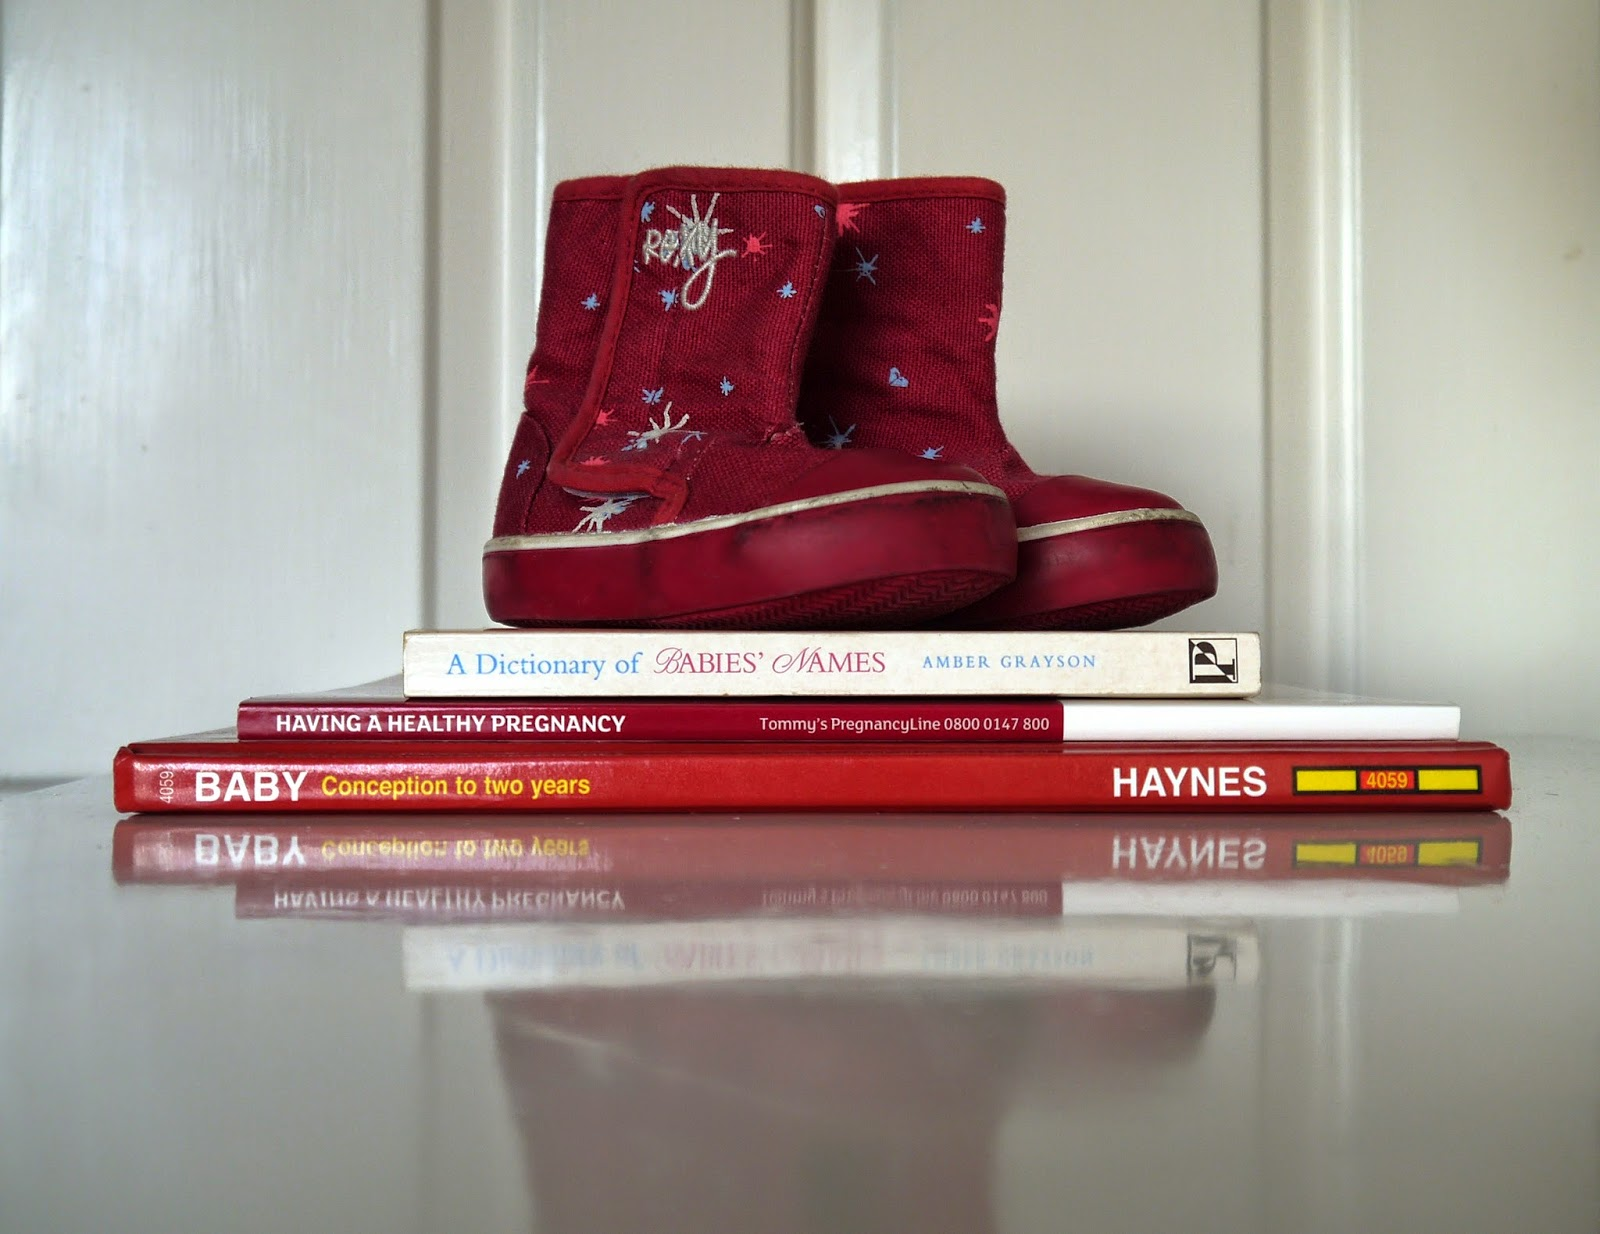 Pregnancy and parenting books and empty shoes